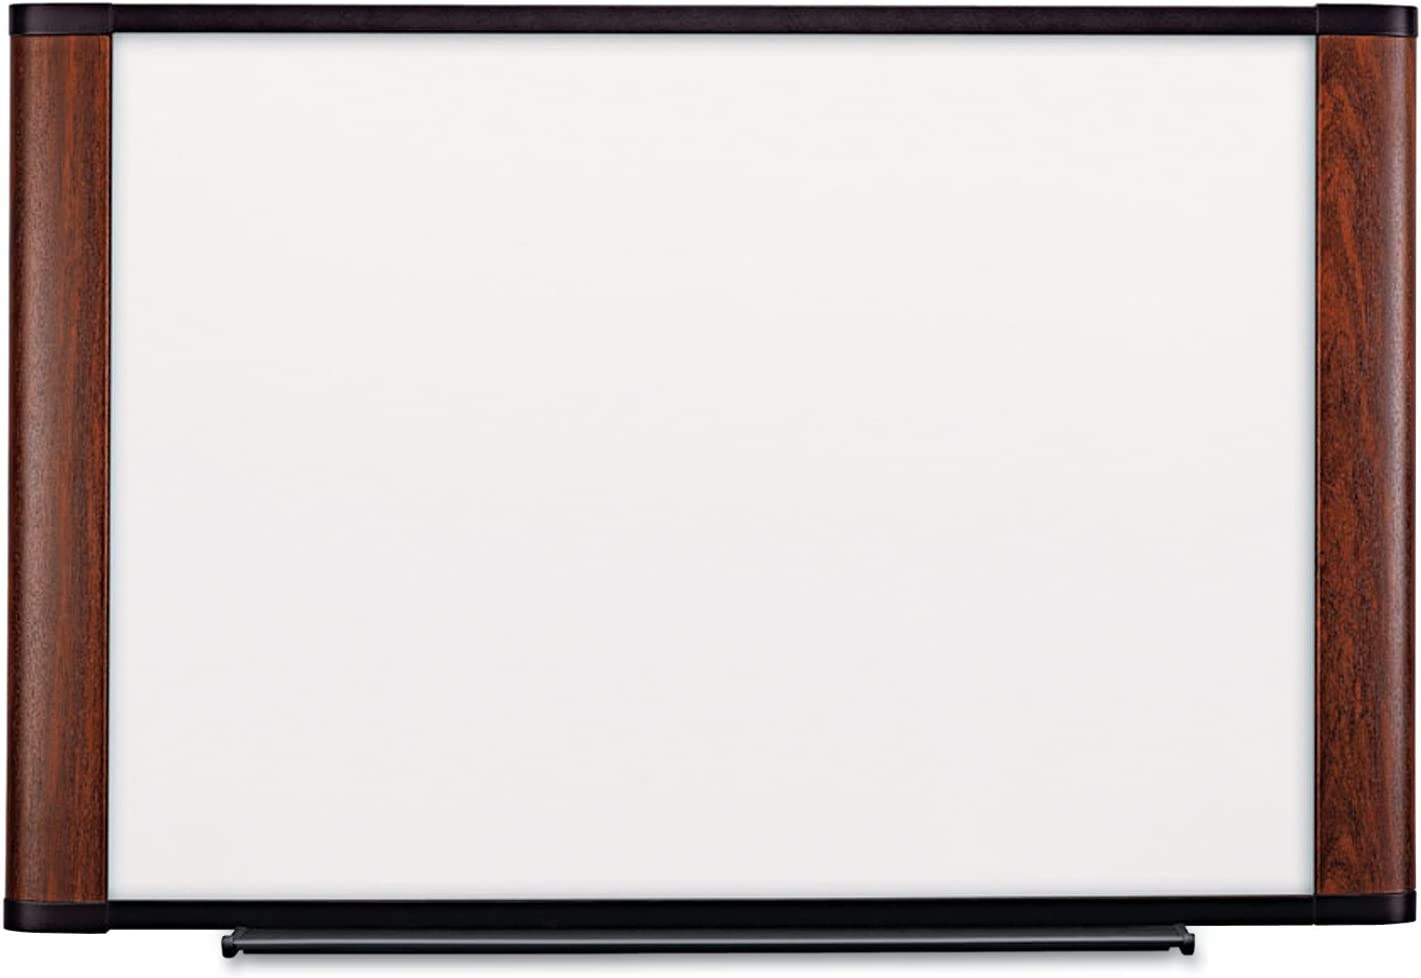 3M Dry Erase Board, 72 x 48-Inches, Widescreen Mahogany-Finish Frame